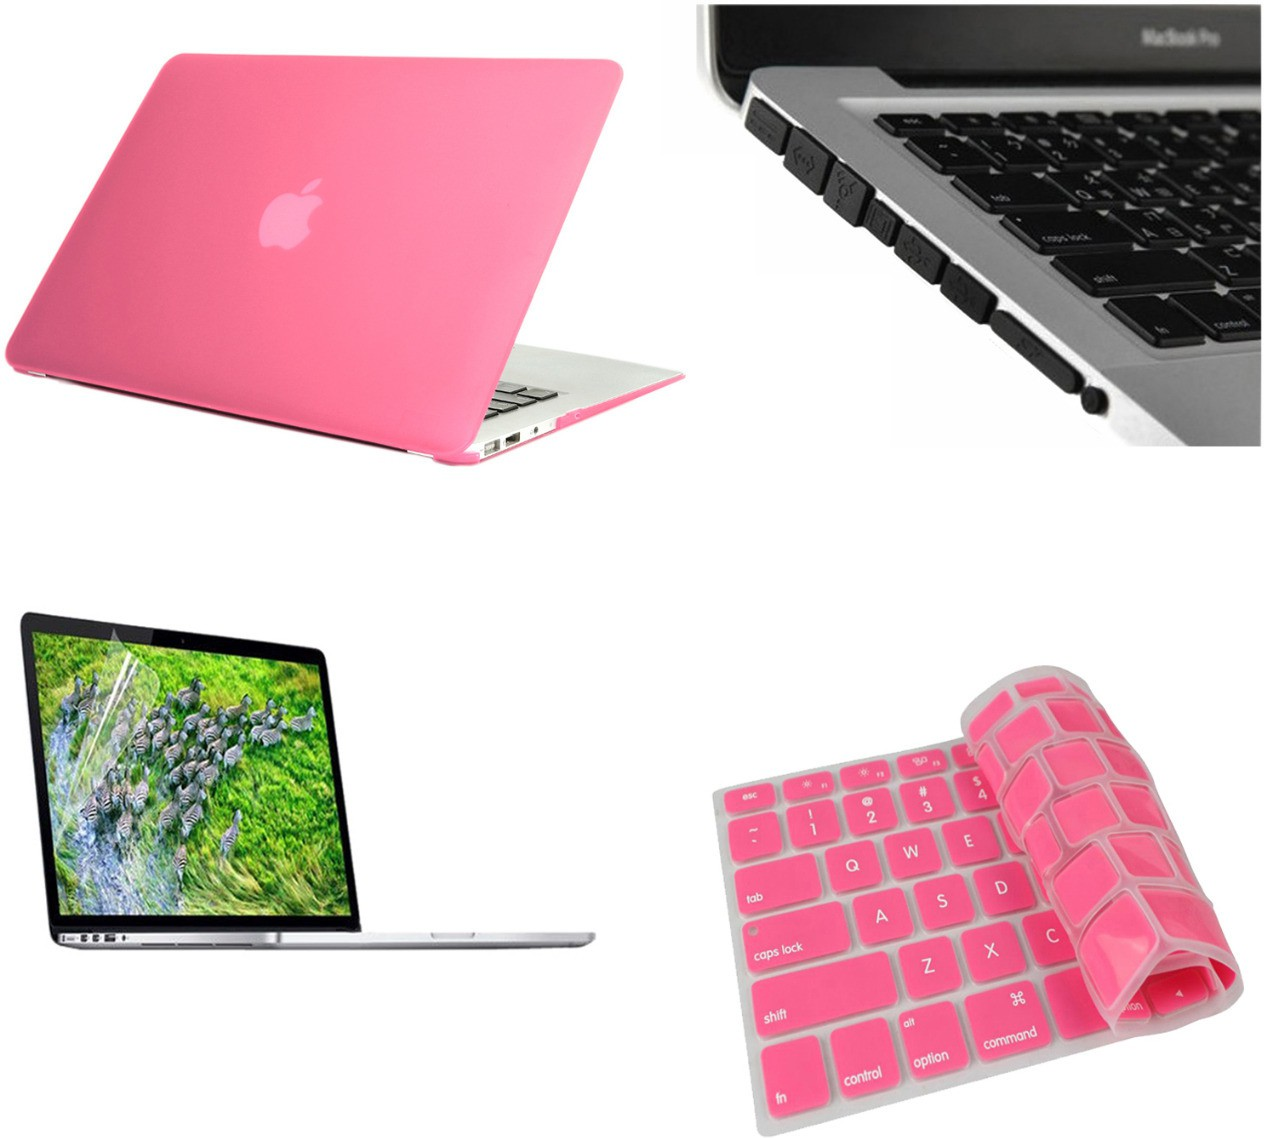 Pindia Pink Matte Finish Apple Macbook Pro 15 15.4 Inch Mb471hn/A Mb471ll/A Hard Case Shell Black Anti Dust Ports Keyboard Skin and Screen Guard Combo Set